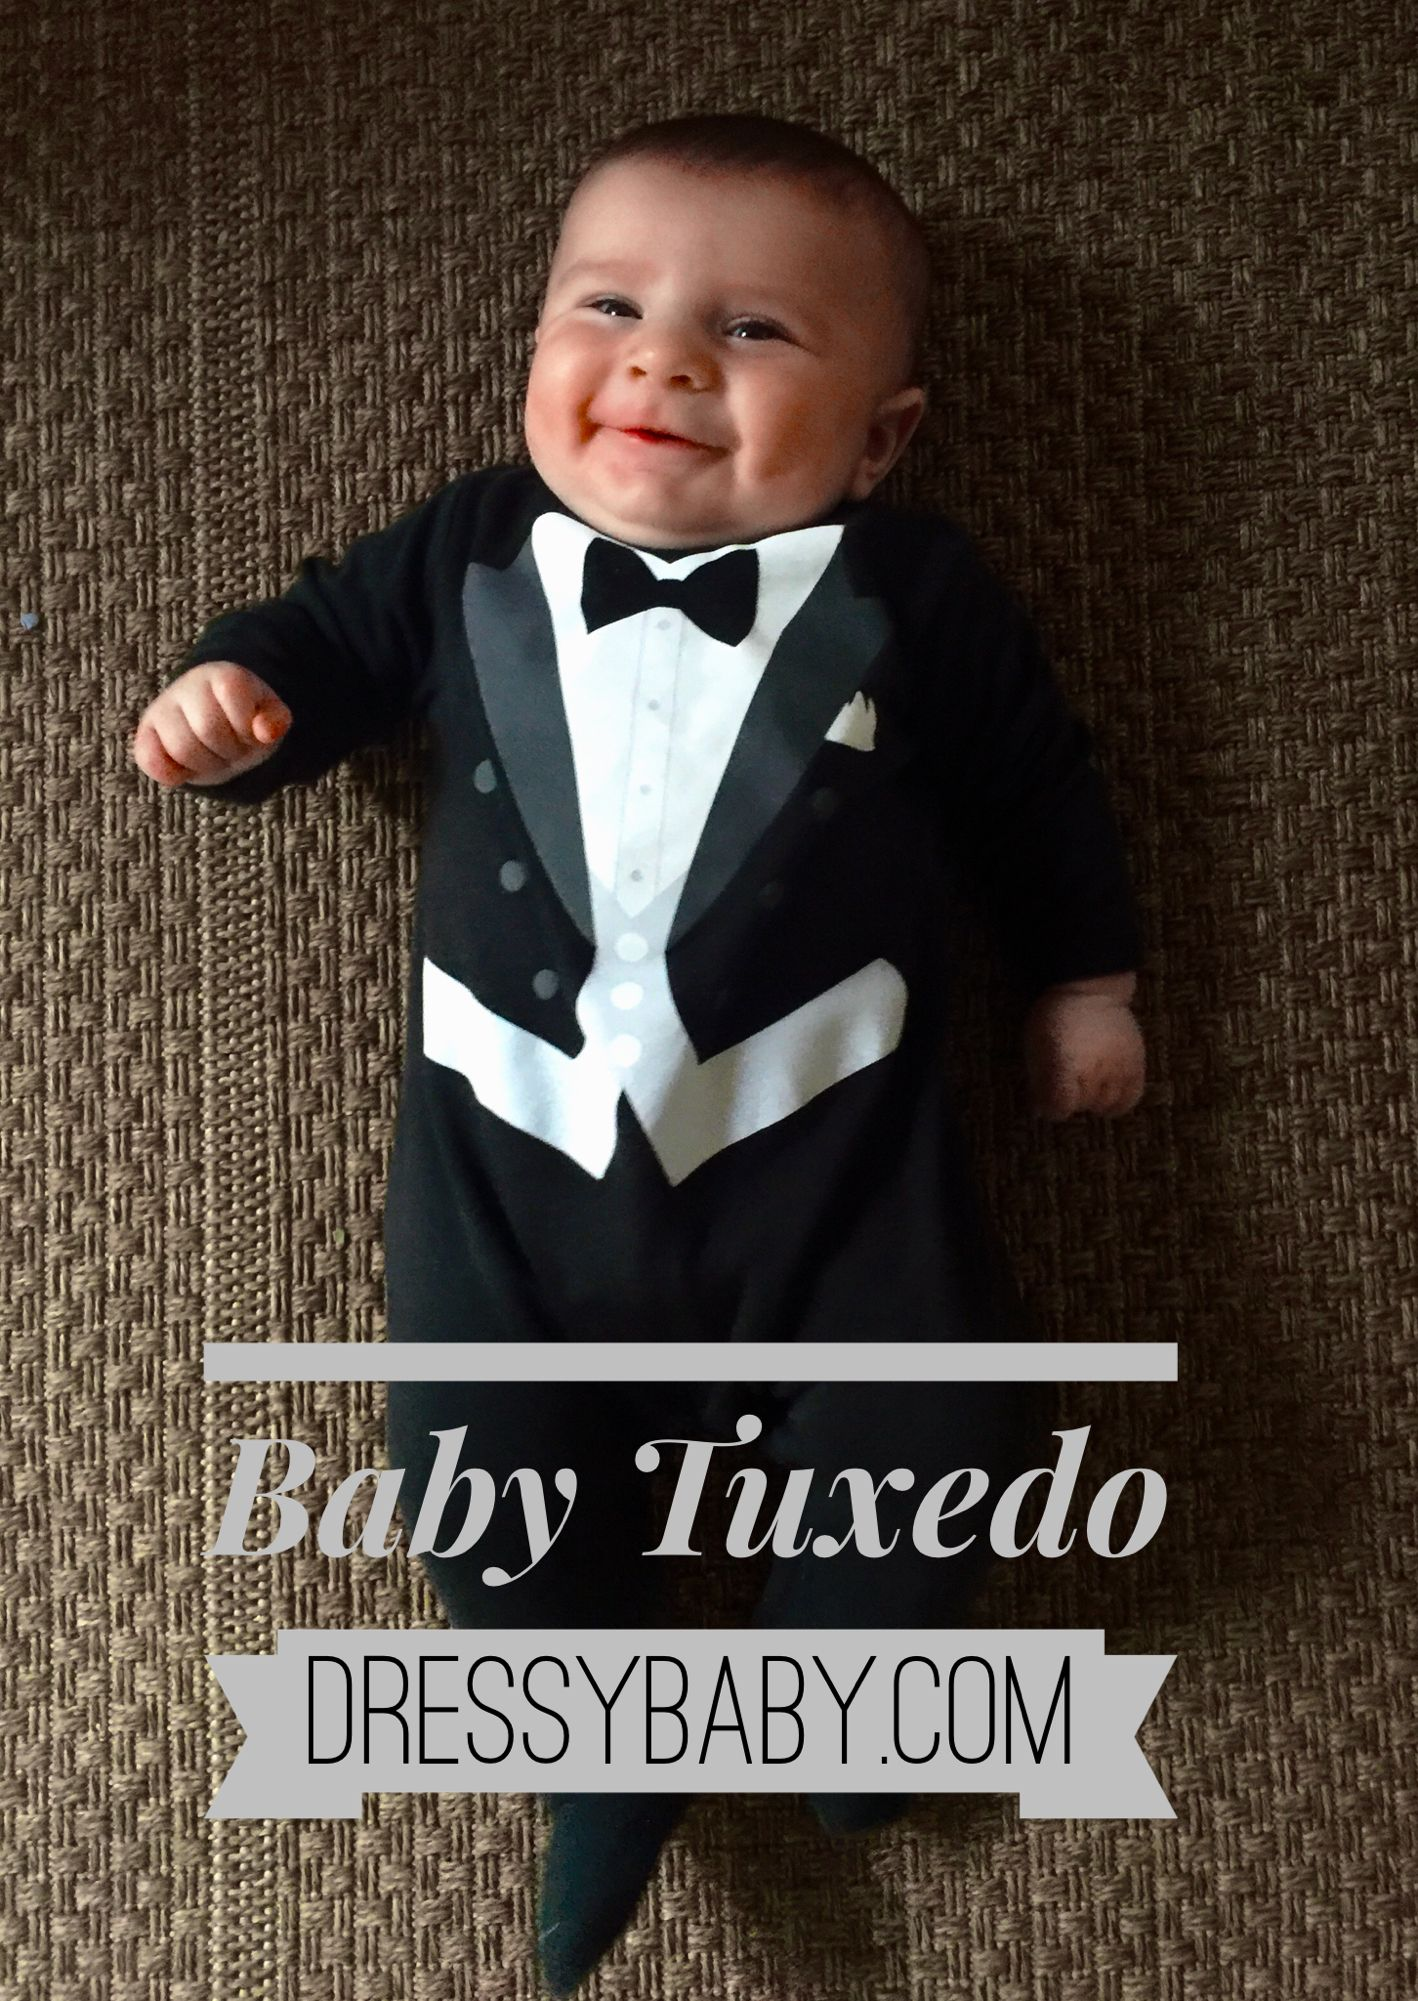 dc269d79057 Baby boy tuxedo pajama dress up outfit by DressyBaby.com perfect for a  classy event!